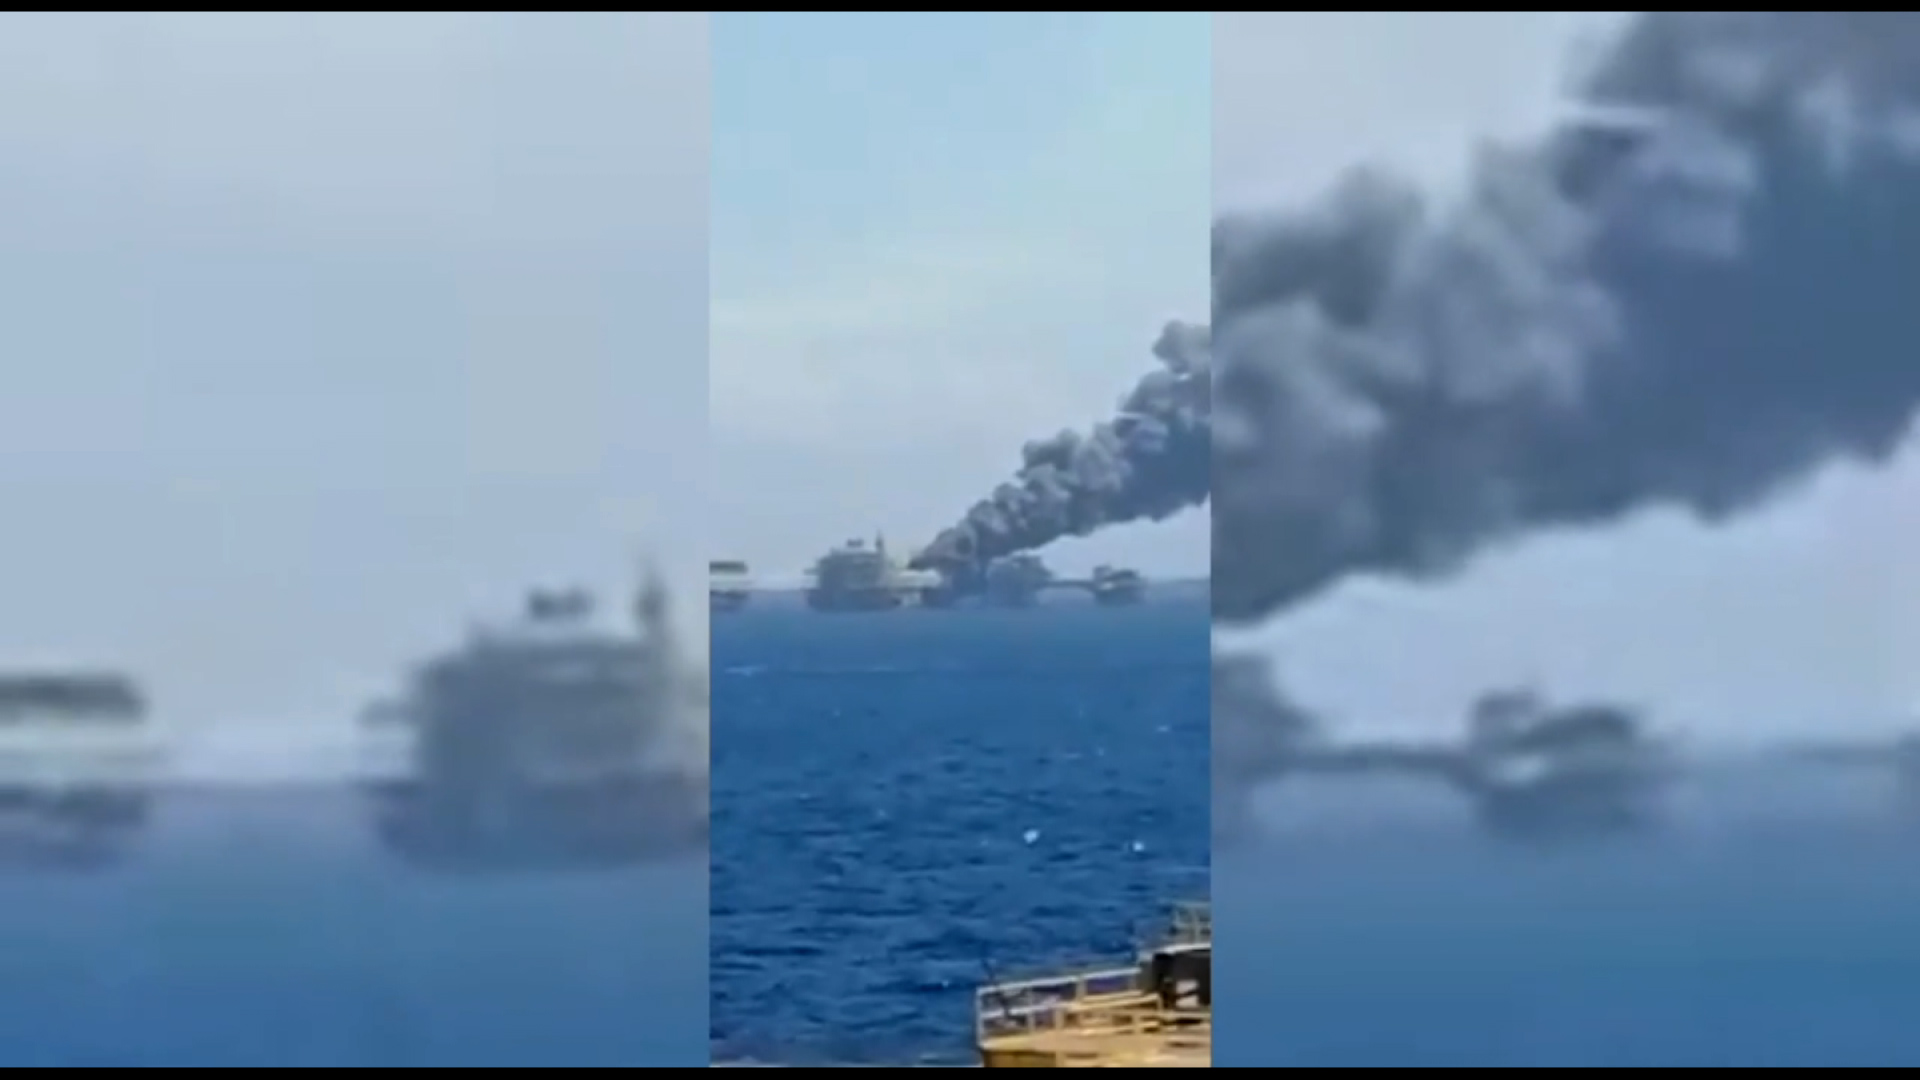 5 injured after Oil rig fire in Gulf of Mexico